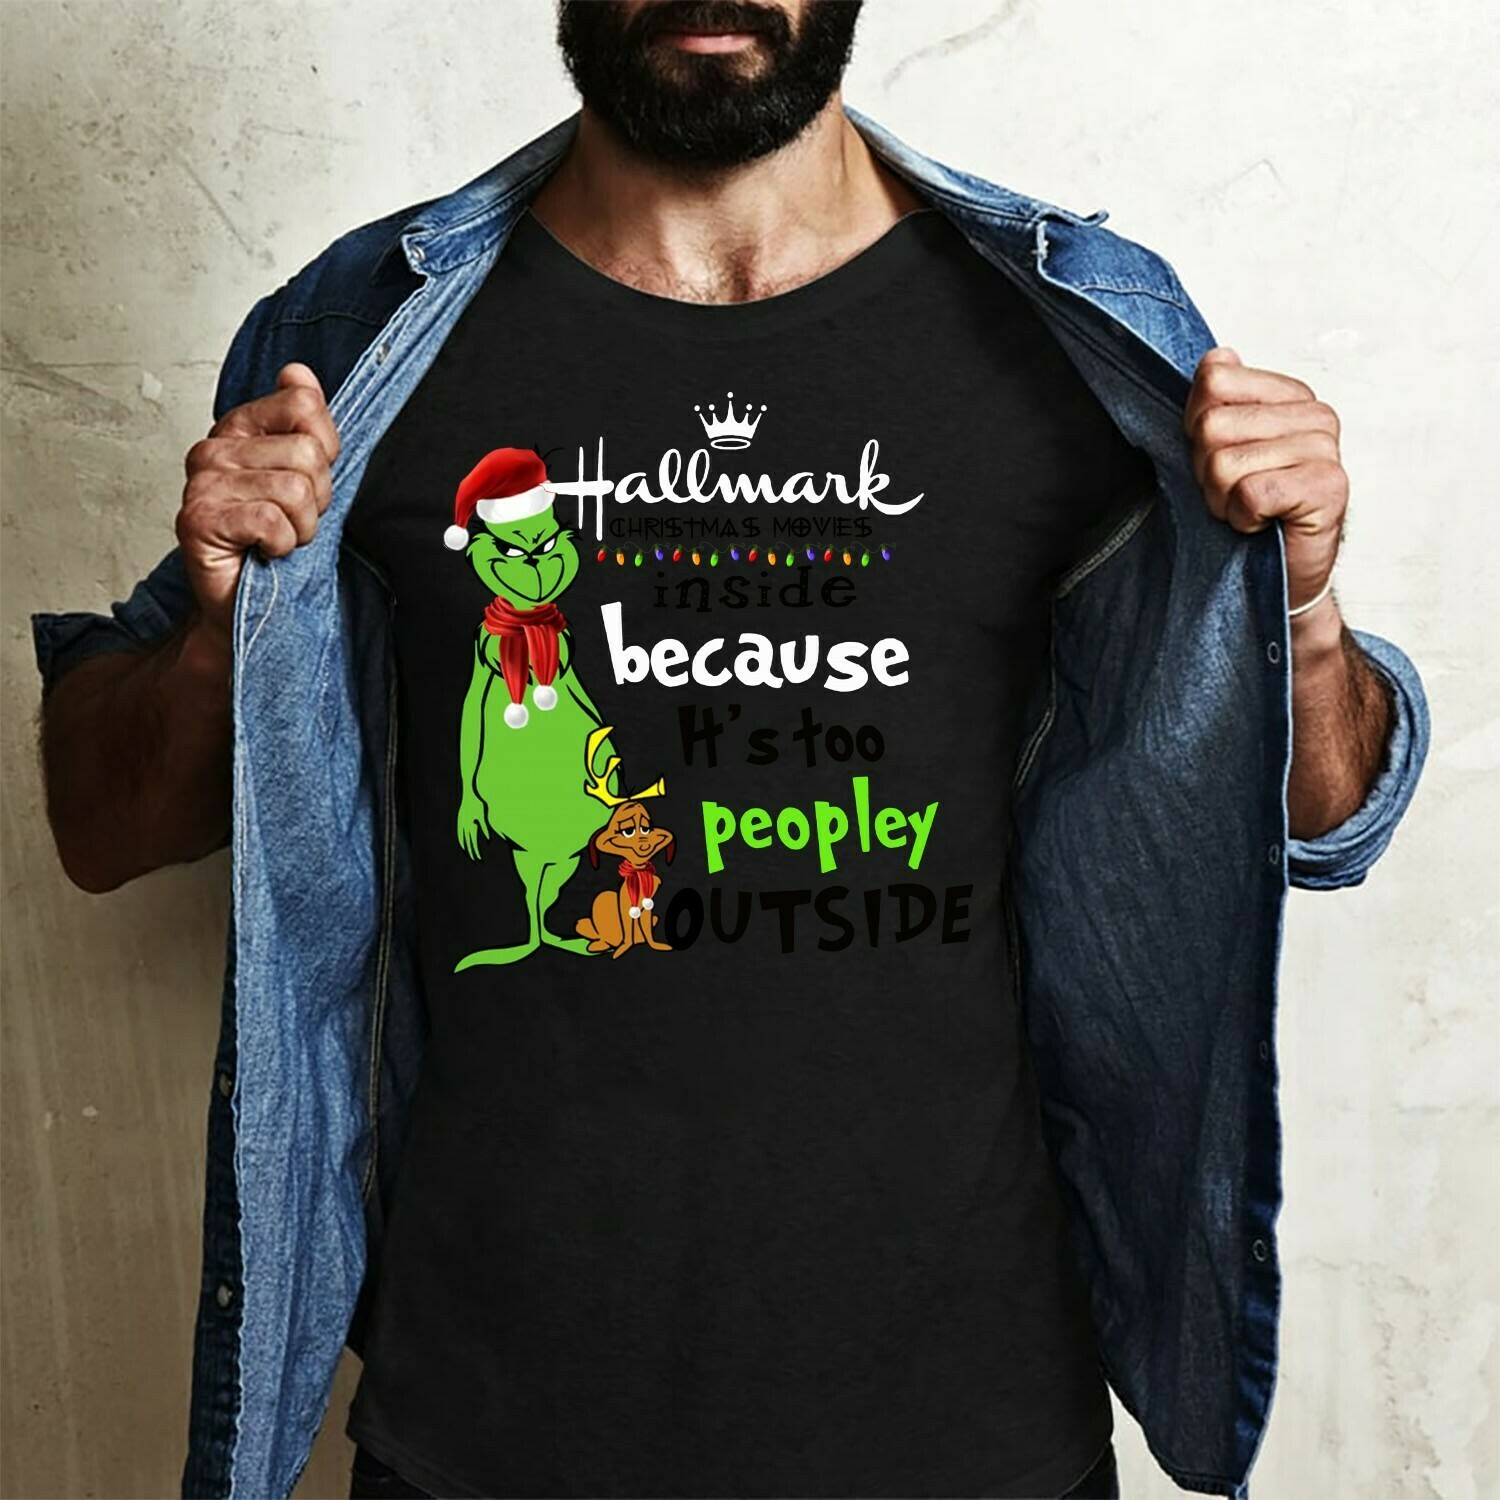 Grinch Hallmark Christmas movies inside because it's too peopley outside,the Grinchmas gathering,Christmas original cartoon Grinch T-Shirt Long Sleeve Sweatshirt Hoodie Jolly Family Gifts